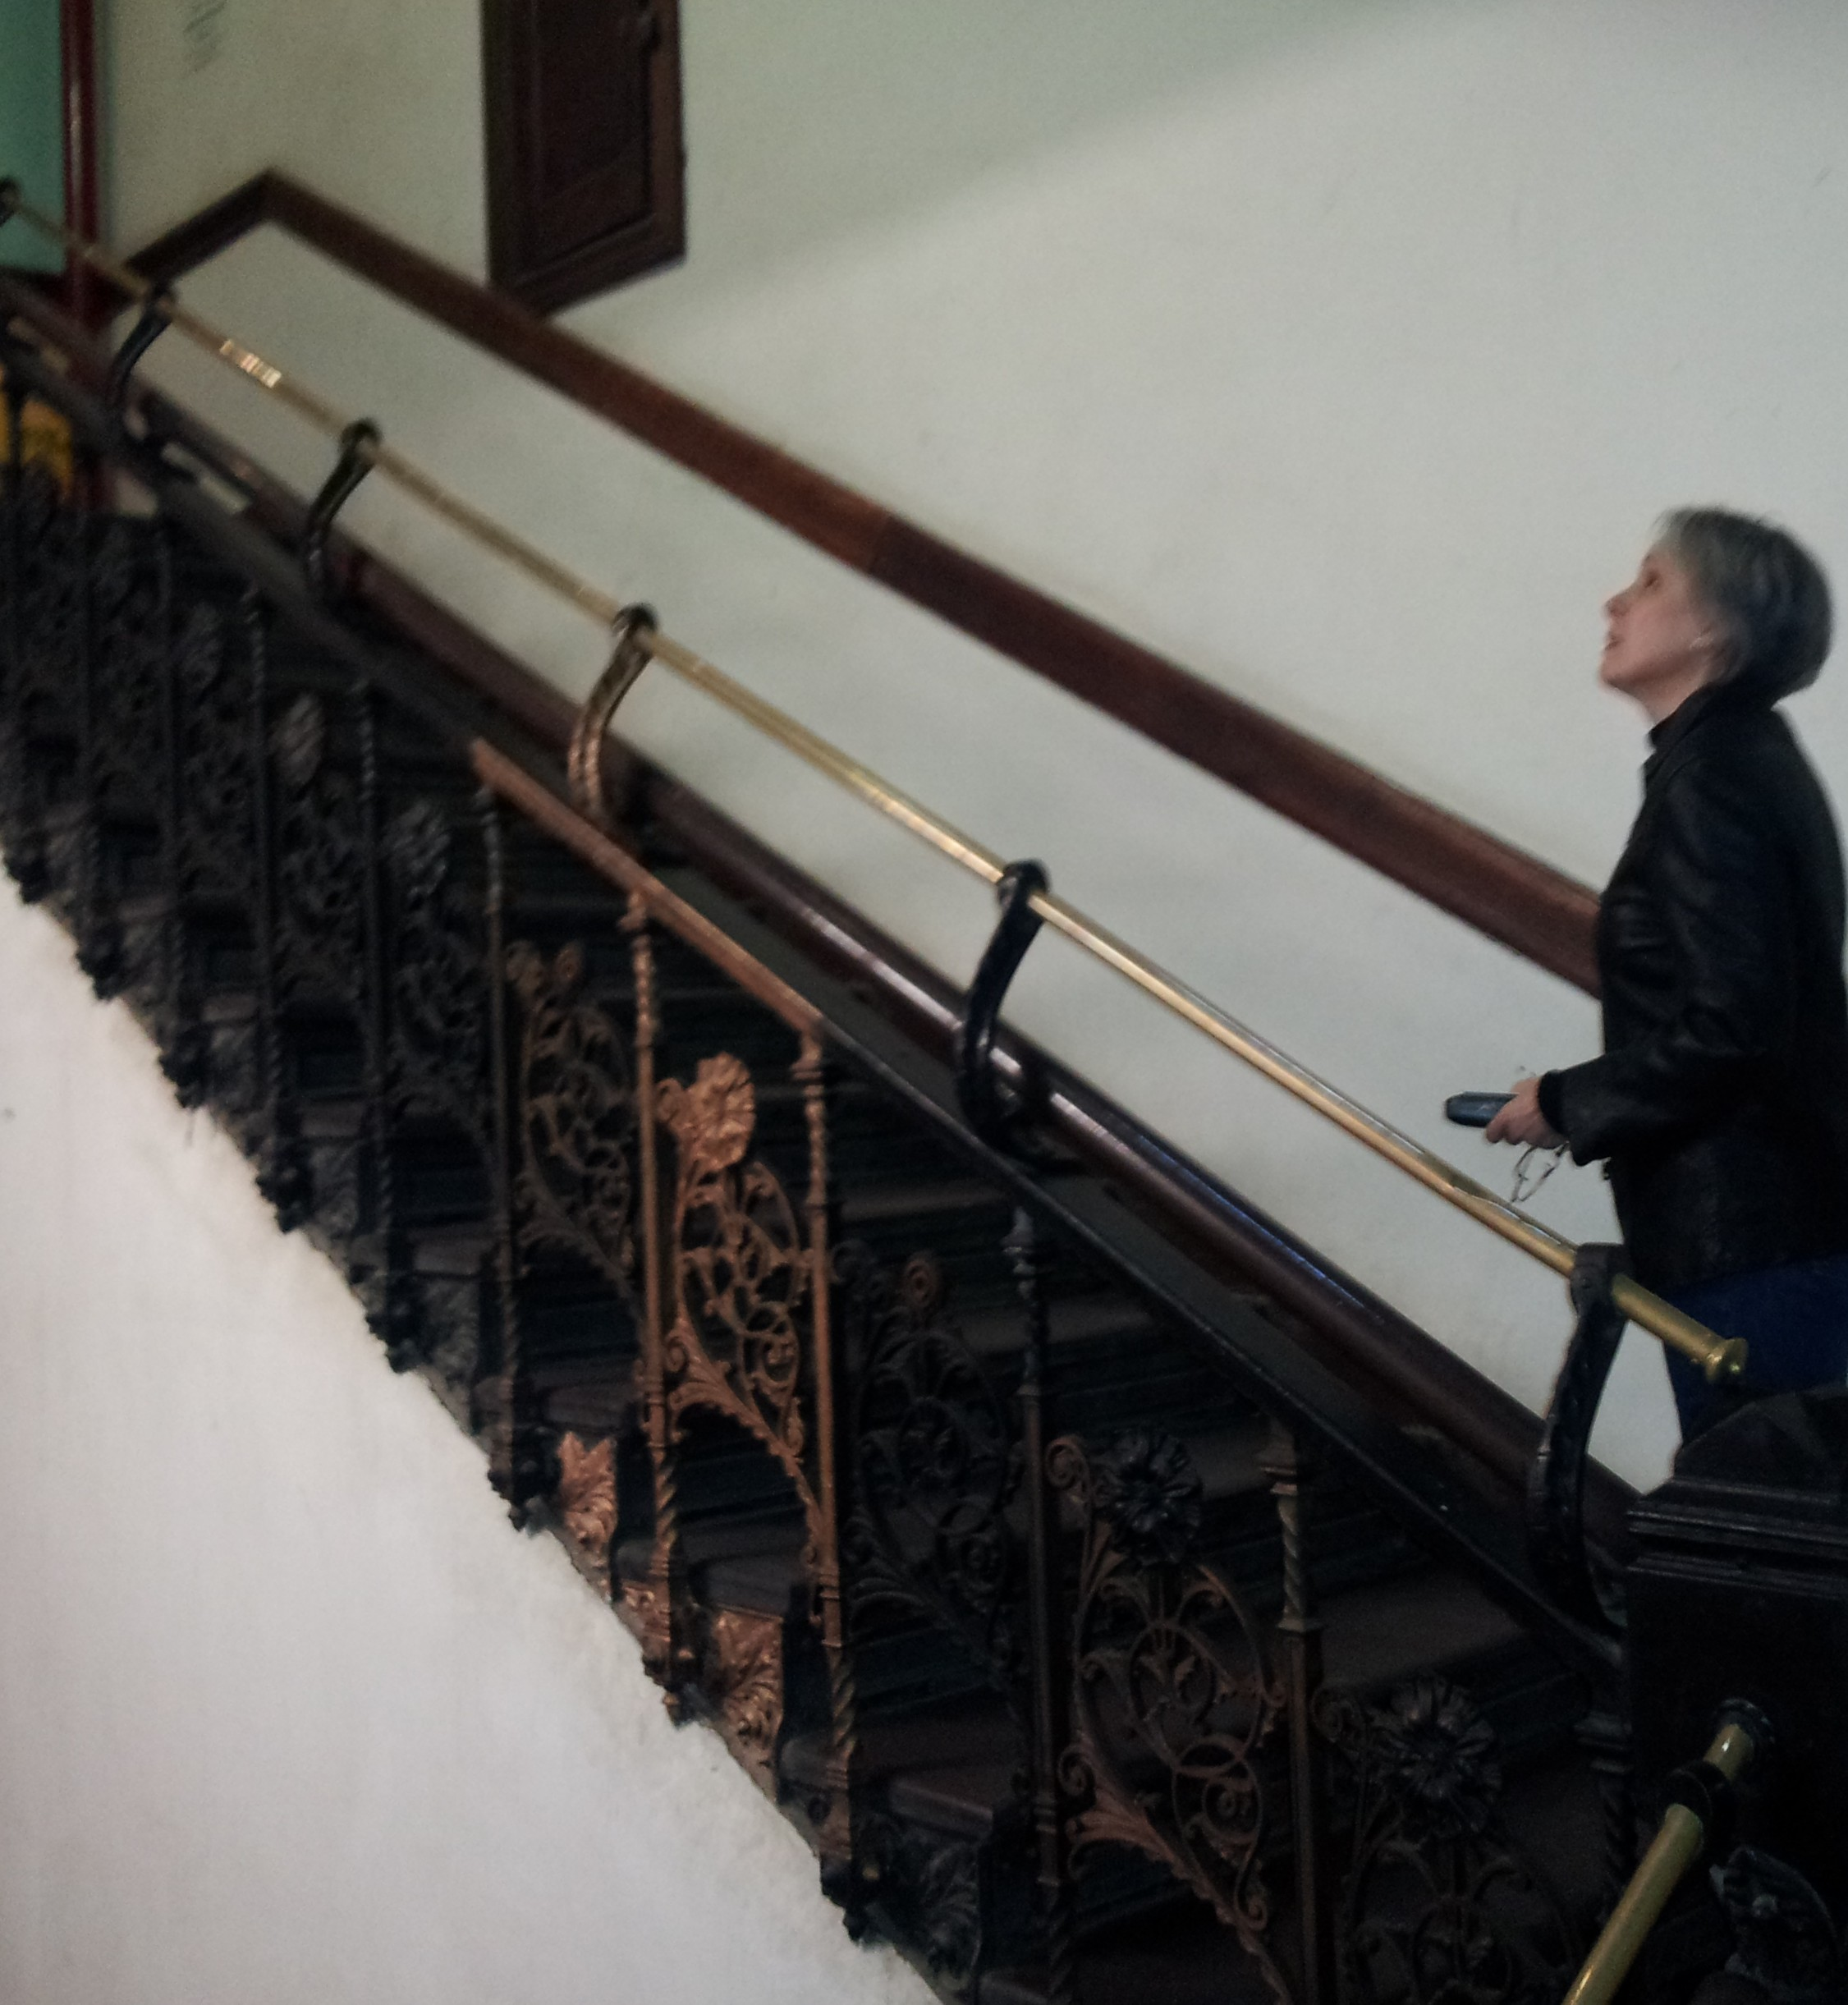 trespasser on stairs, chelsea hotel